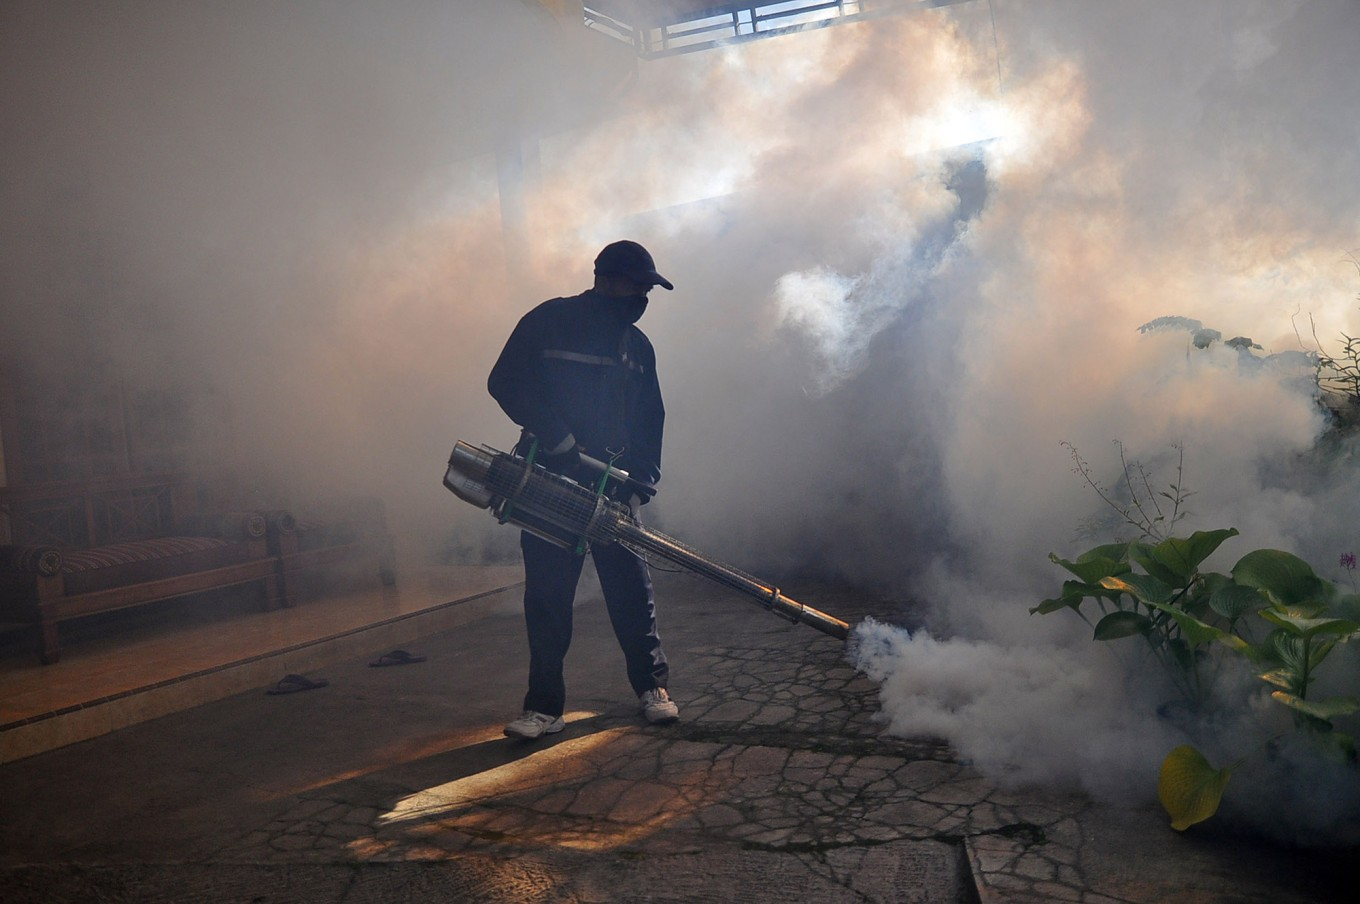 Dengue fever kills 104, infects more than 17,000 nationwide since January